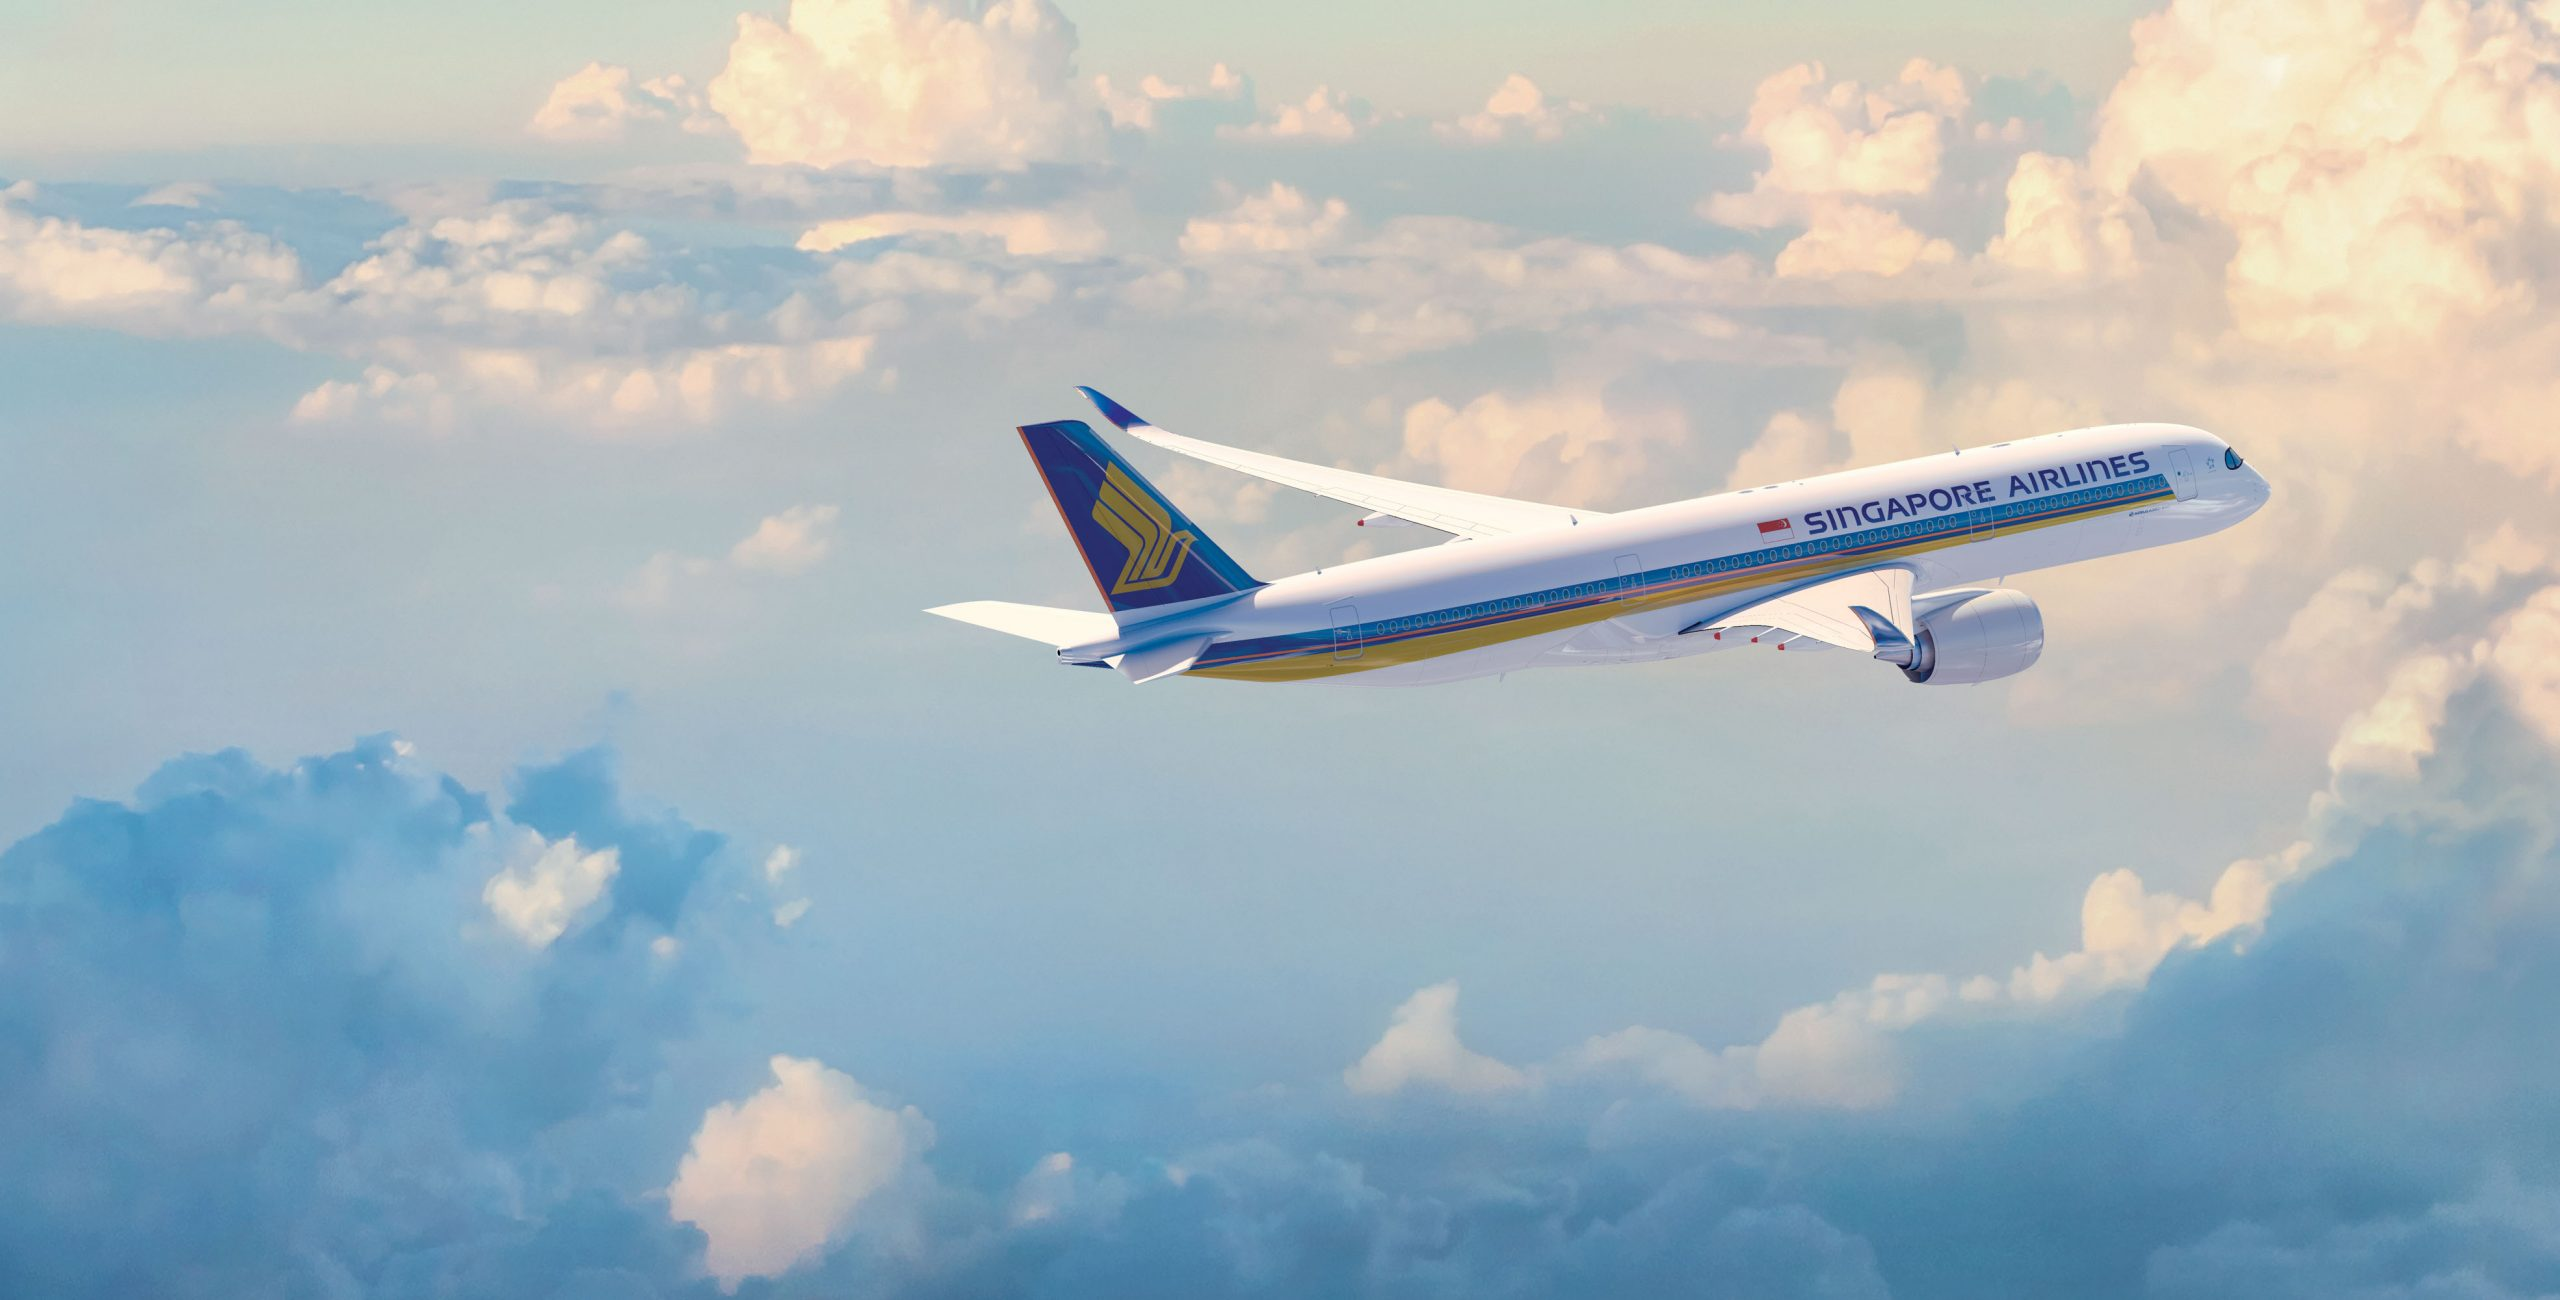 Singapore Airlines X Shopback